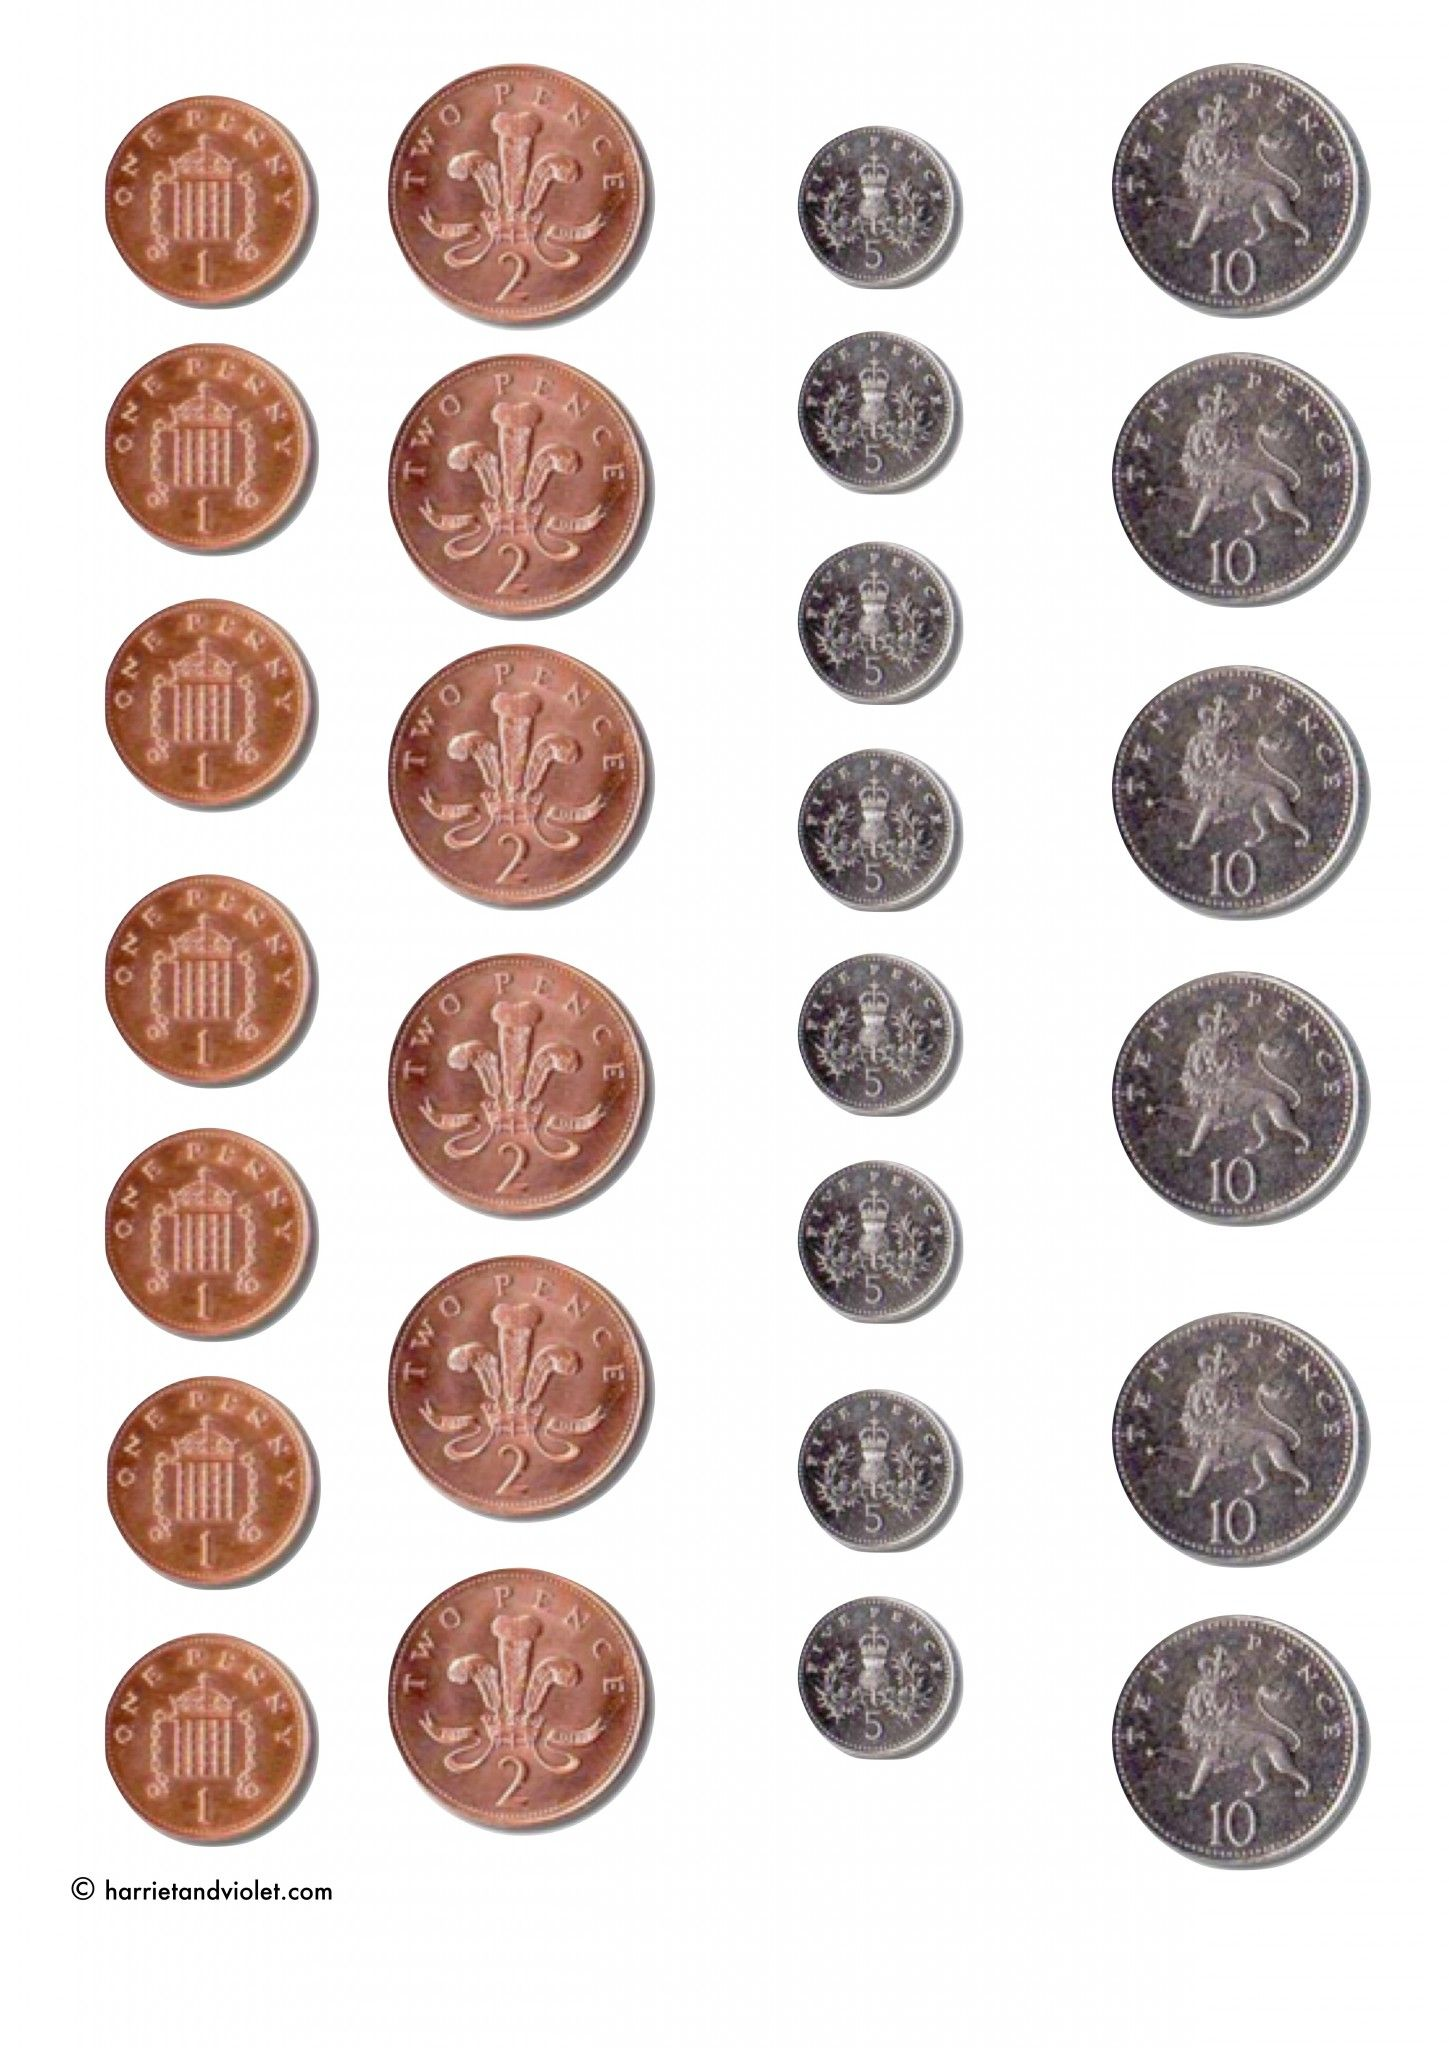 graphic about Printable Coins called Printable cash for video games, counting - Absolutely free Coaching